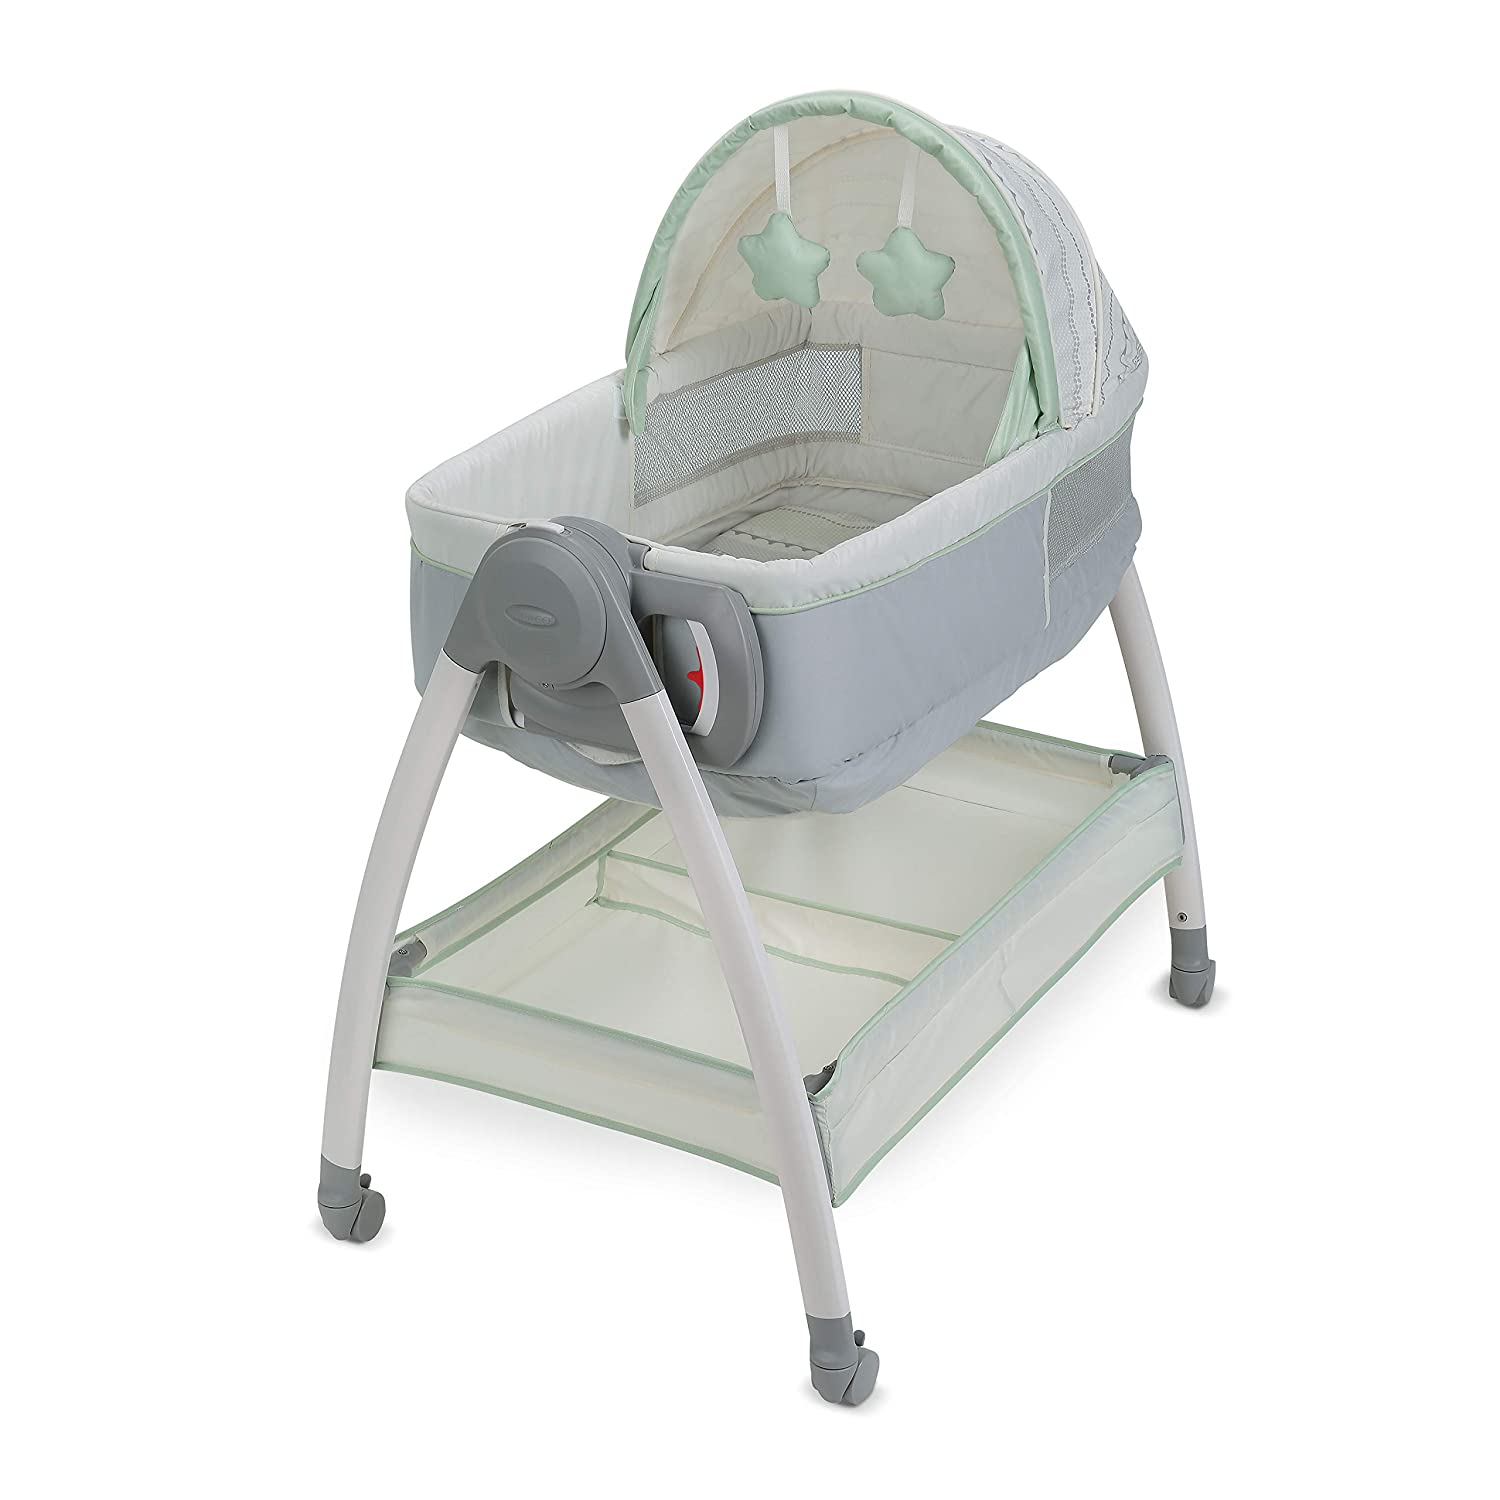 Graco Dream Suite Bassinet Image